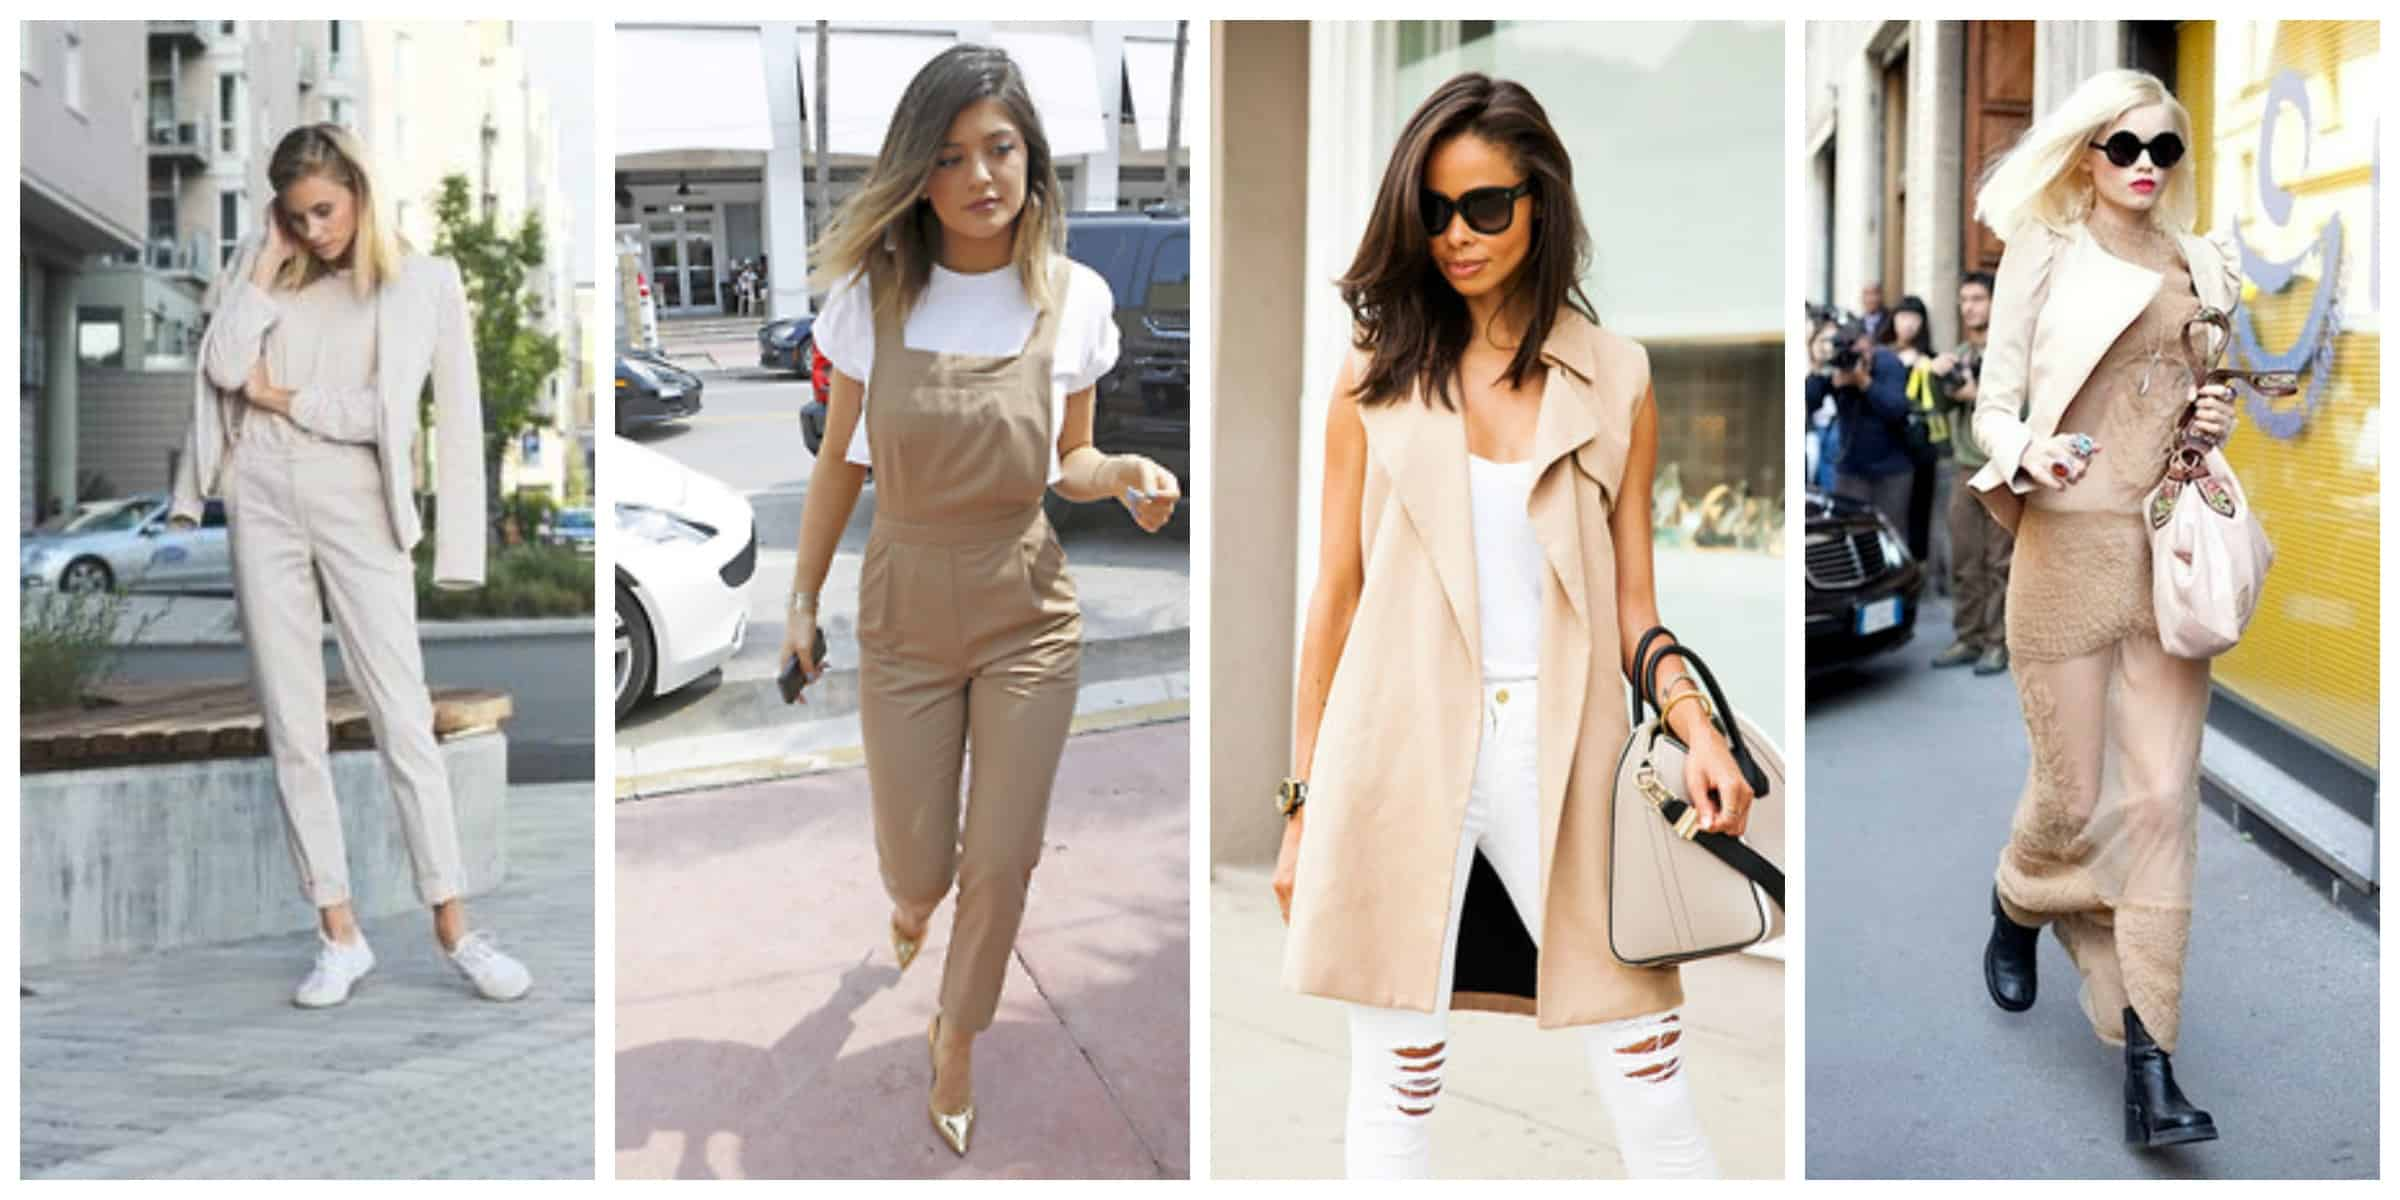 Nude-Colored Clothing And Accessories 2020 ⋆